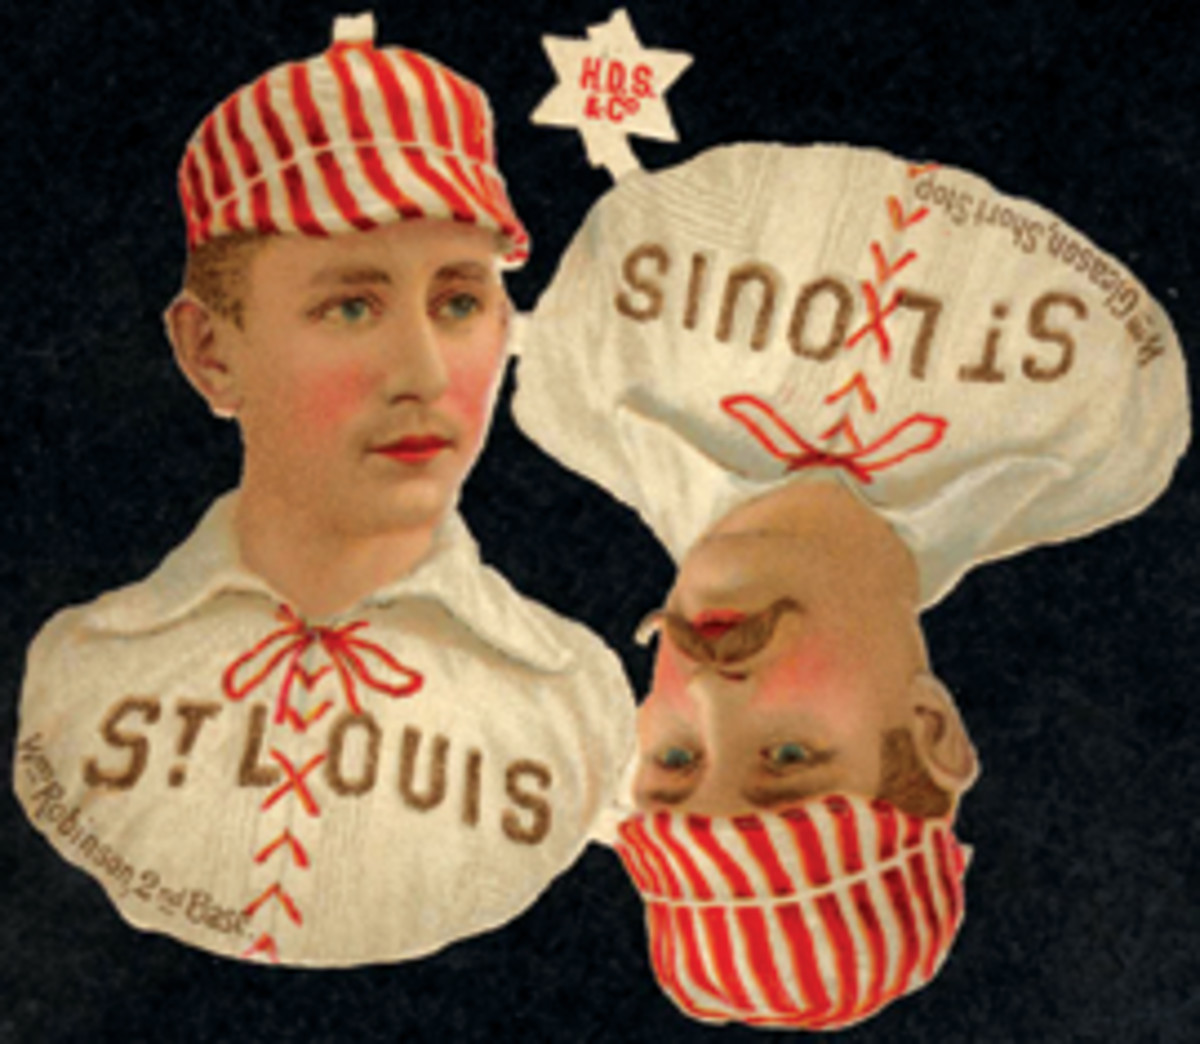 These 1888 Scrapps cards are still attached, something not seen in this hobby, according to Memory Lane.